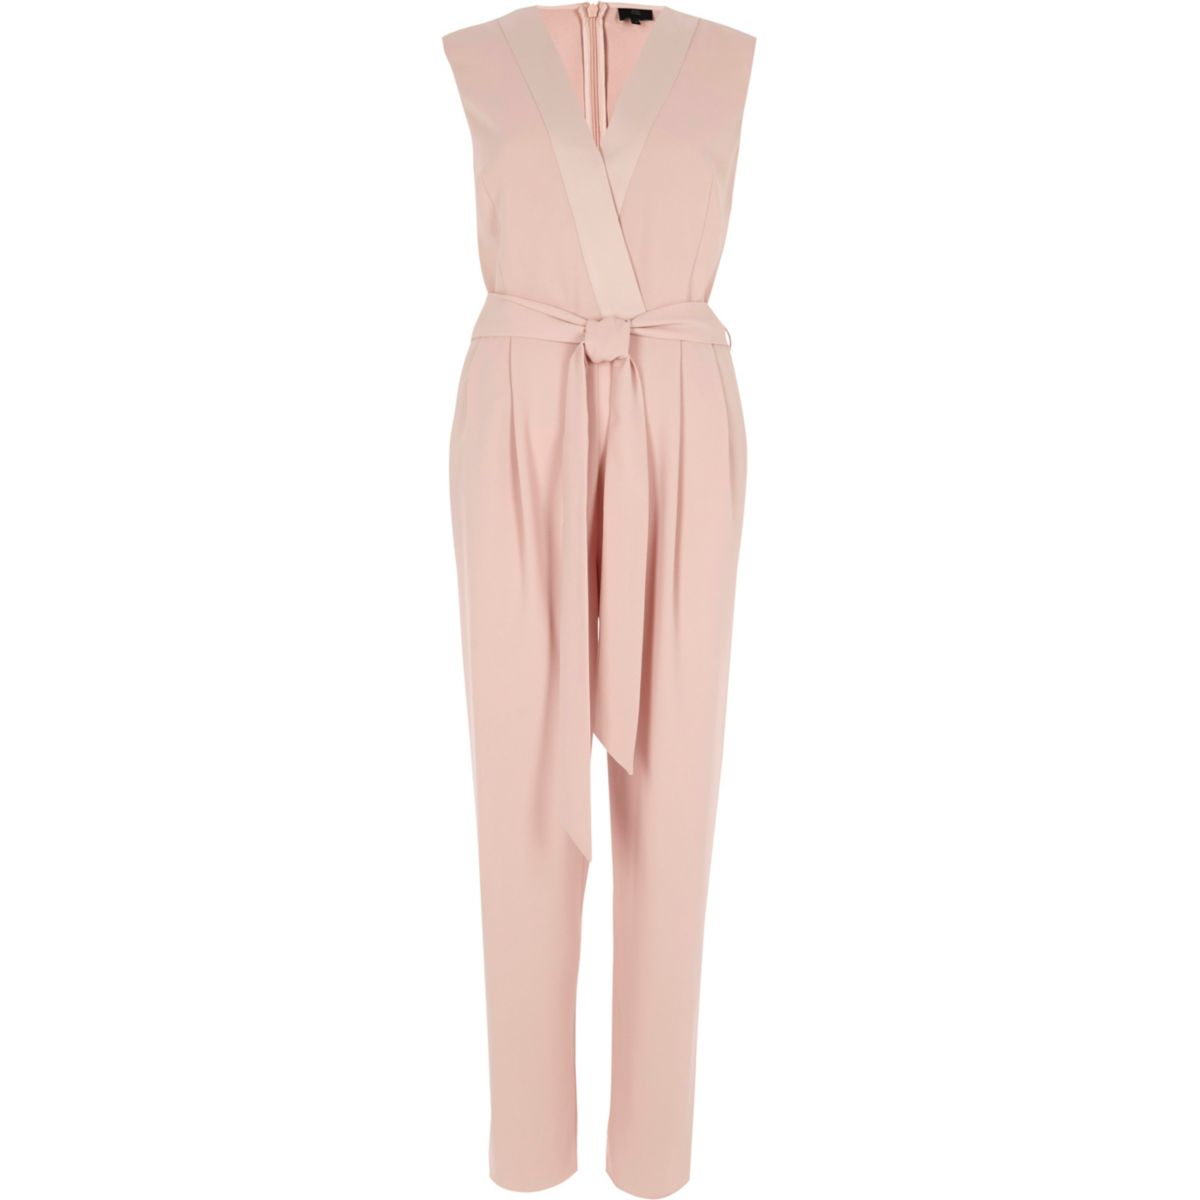 Light pink belted tailored jumpsuit